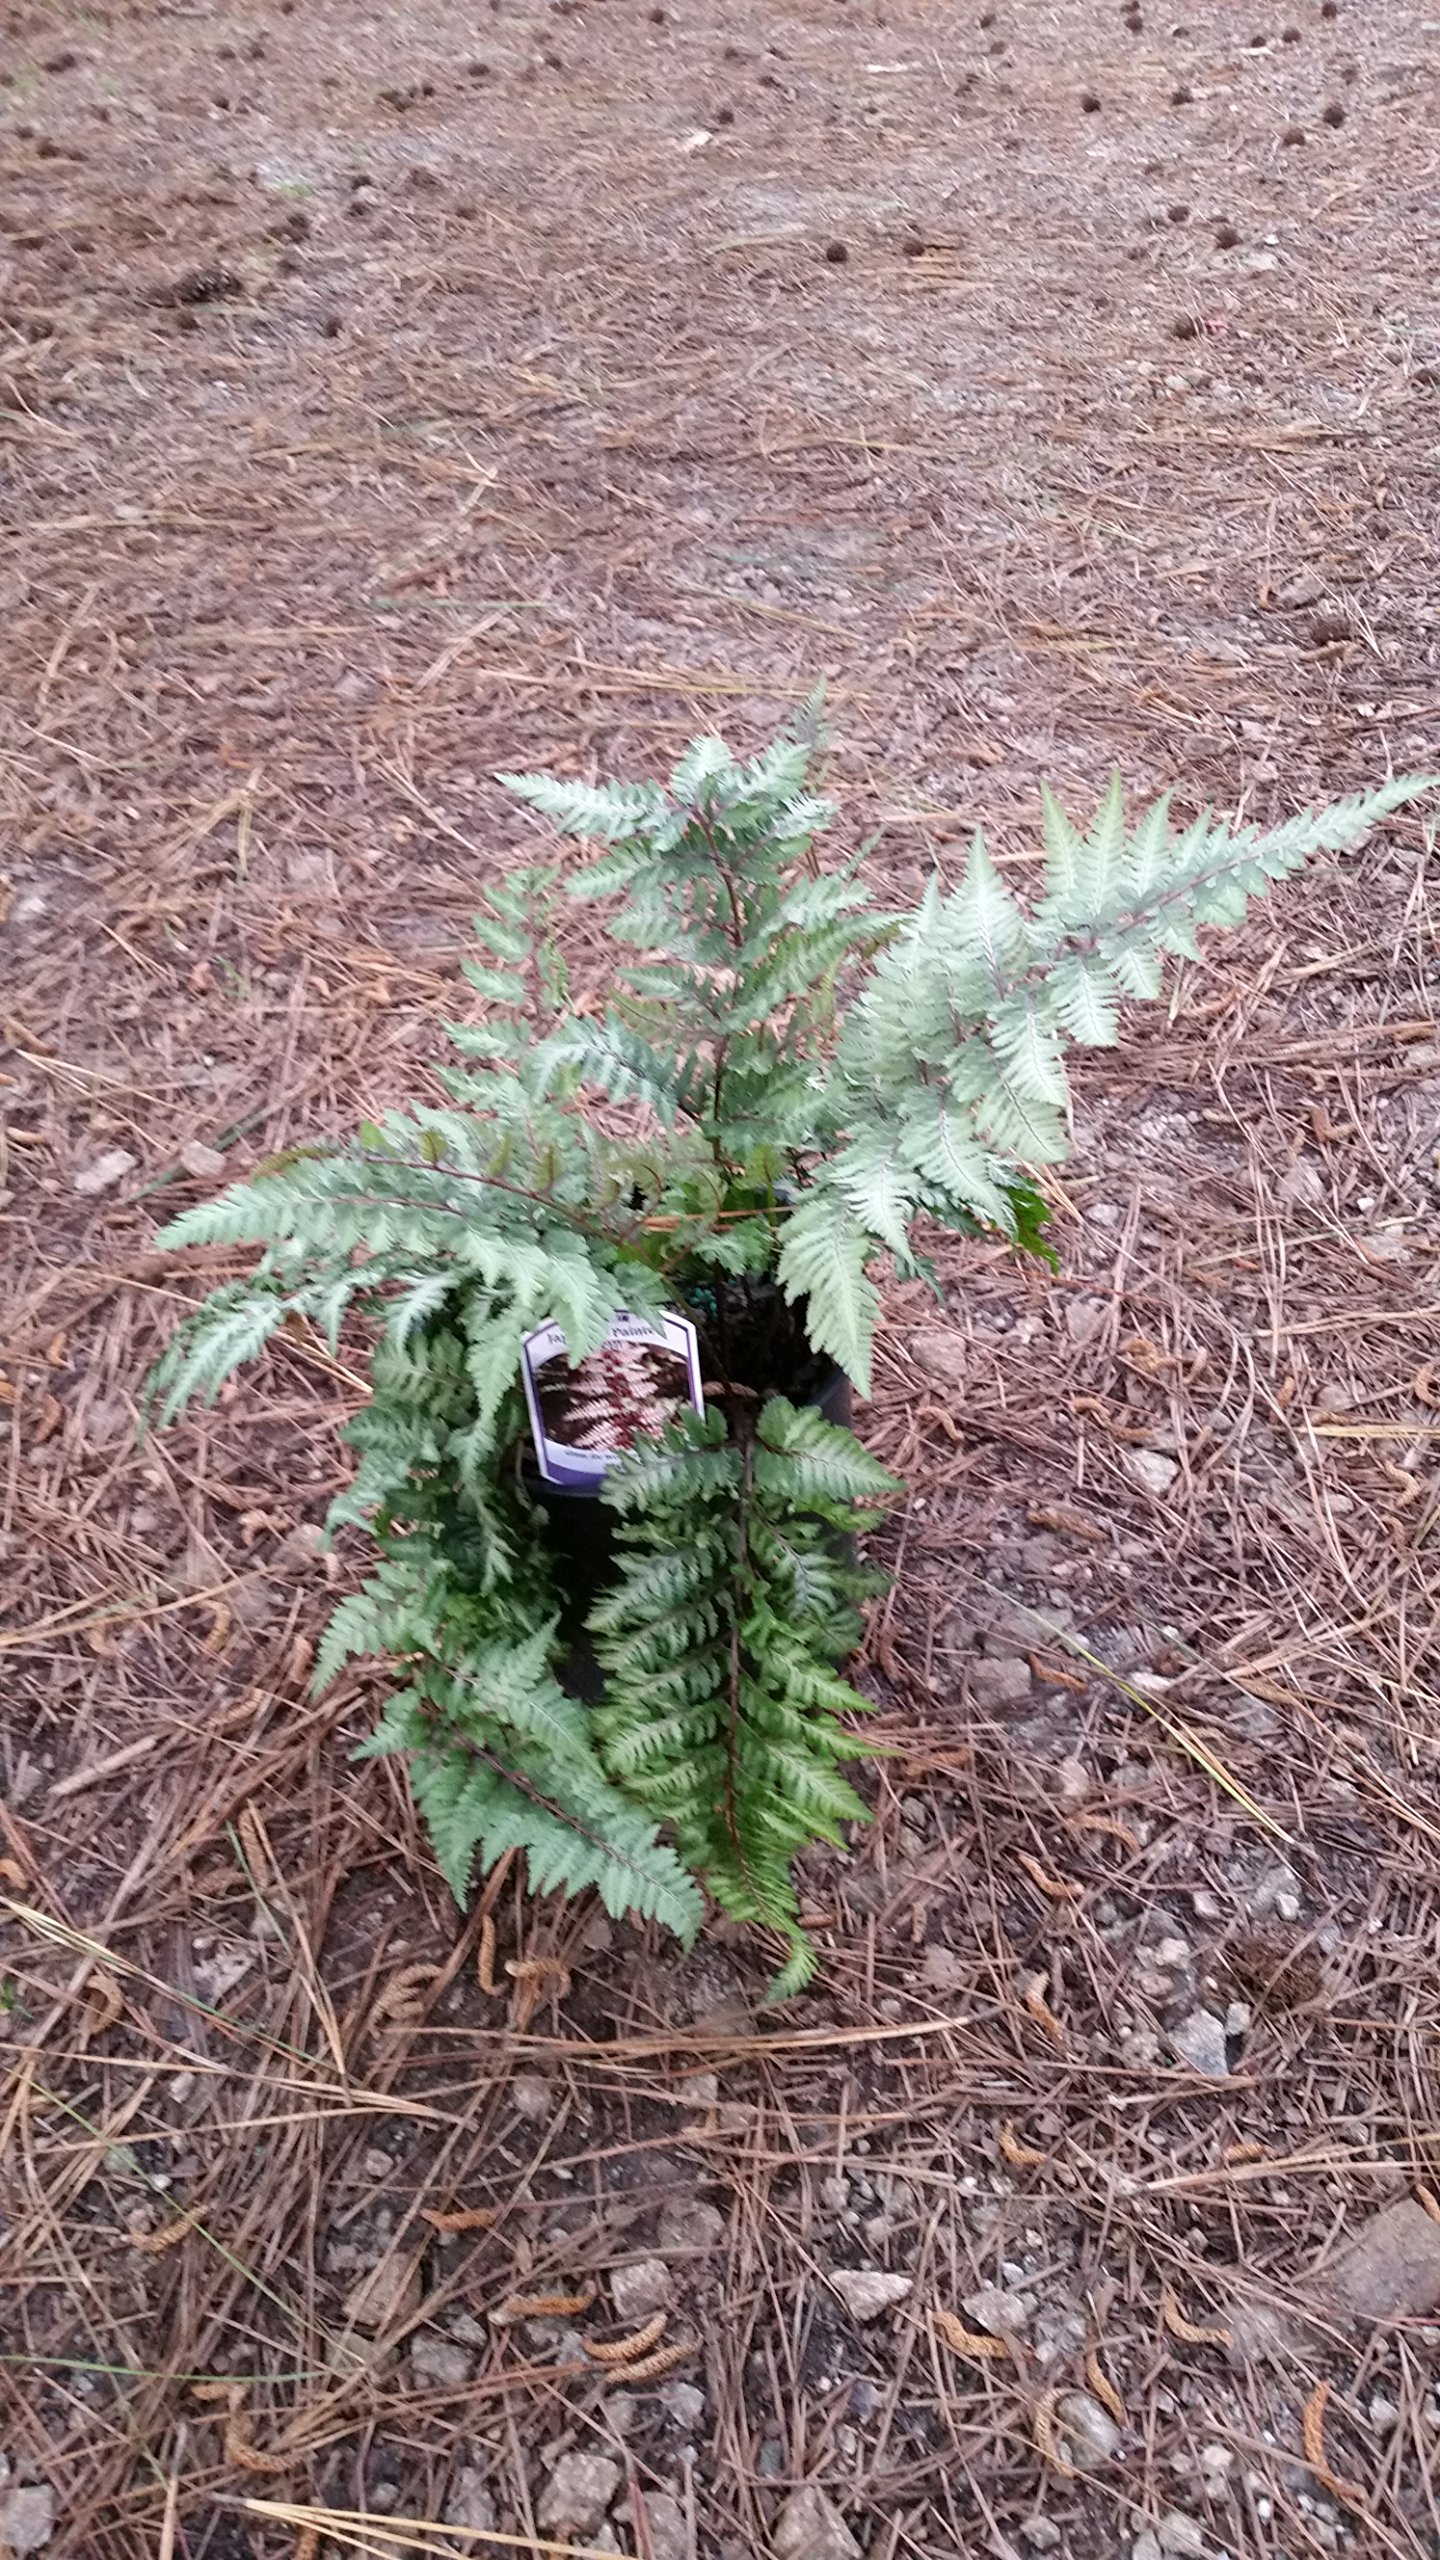 (1 Gallon Plant) AUTUMN FERN, One of the Most Impressive Ferns, Dazzling Display of Color for Every Season-Starting from Copper to Light Green to Orange Copper.